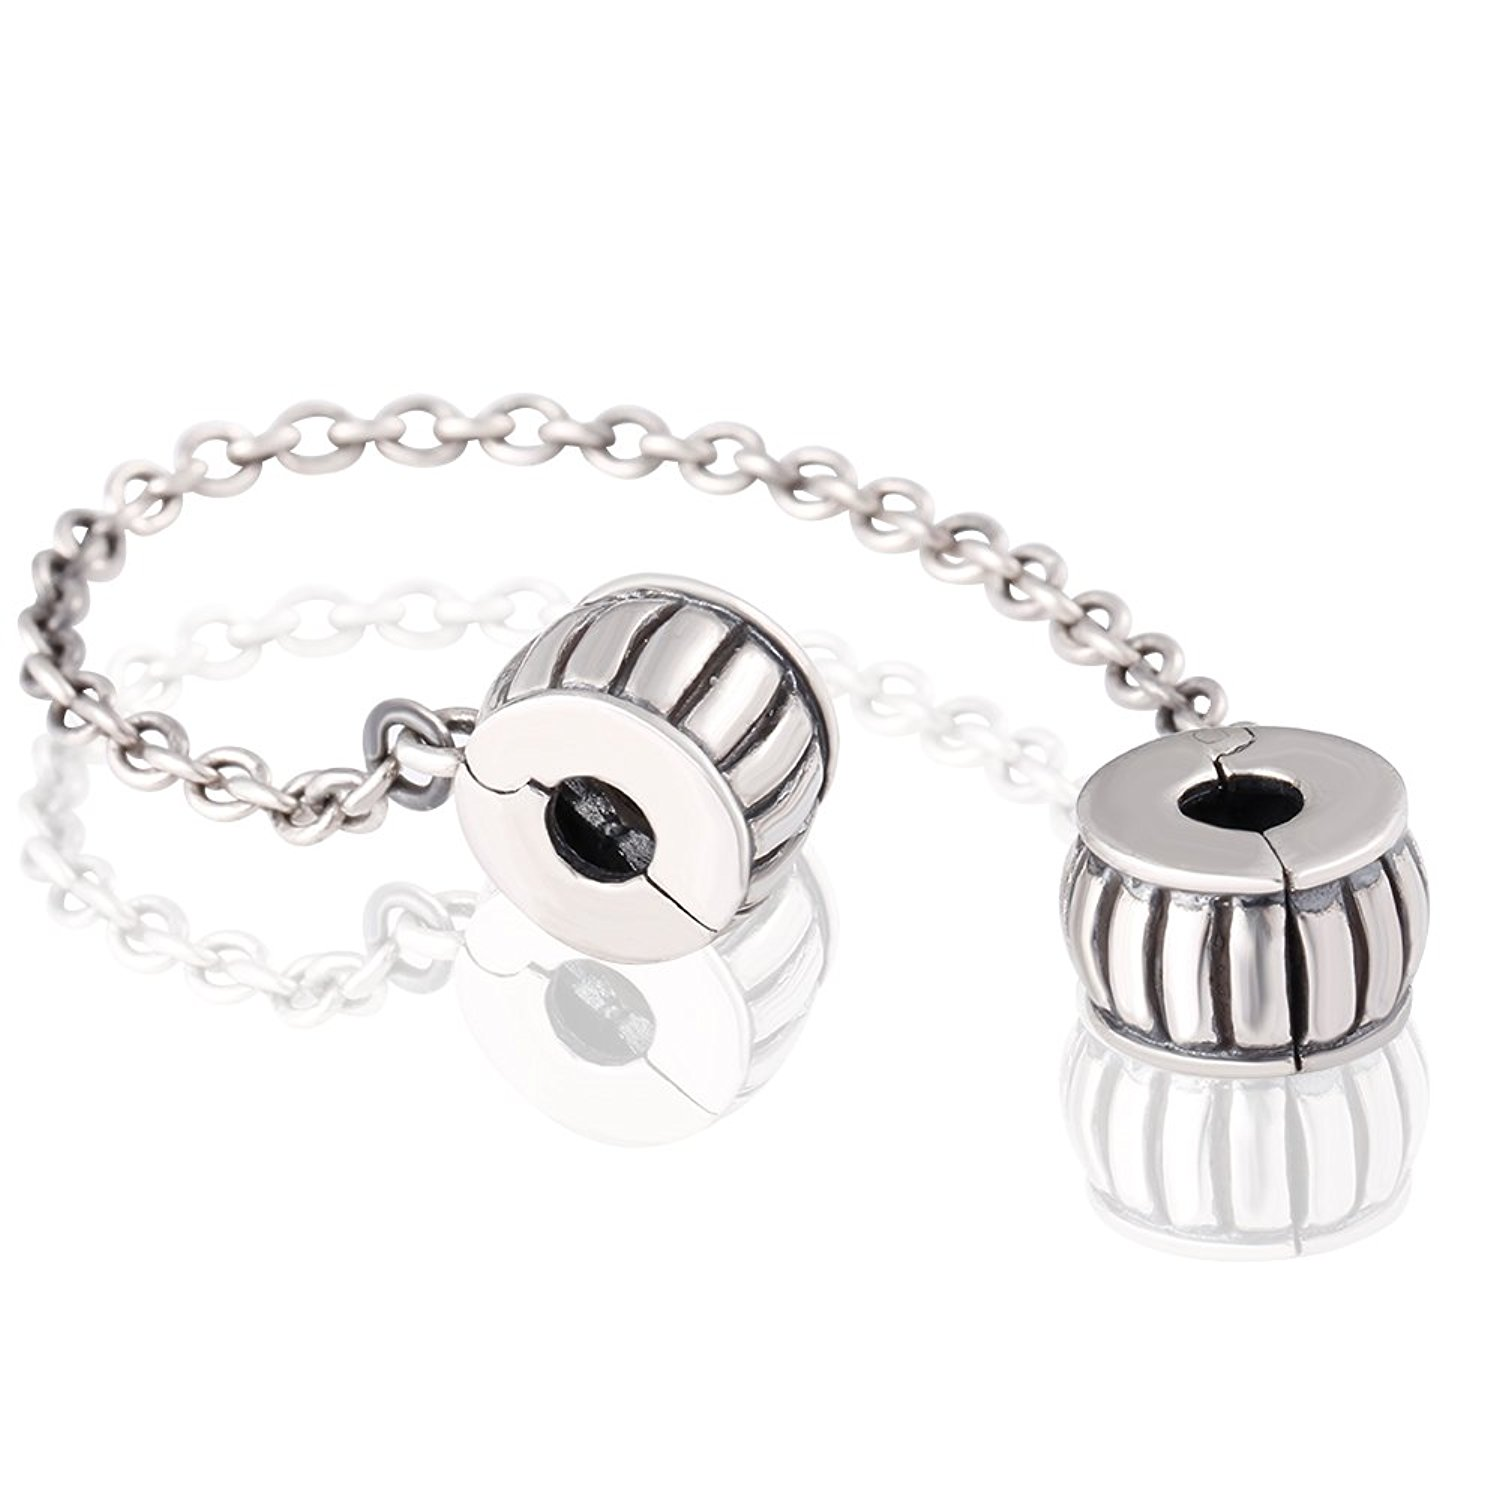 Clasp Safety Chain Charm 925 Sterling Silver Clip Stopper Charm Spacer Charm for Charm Bracelet